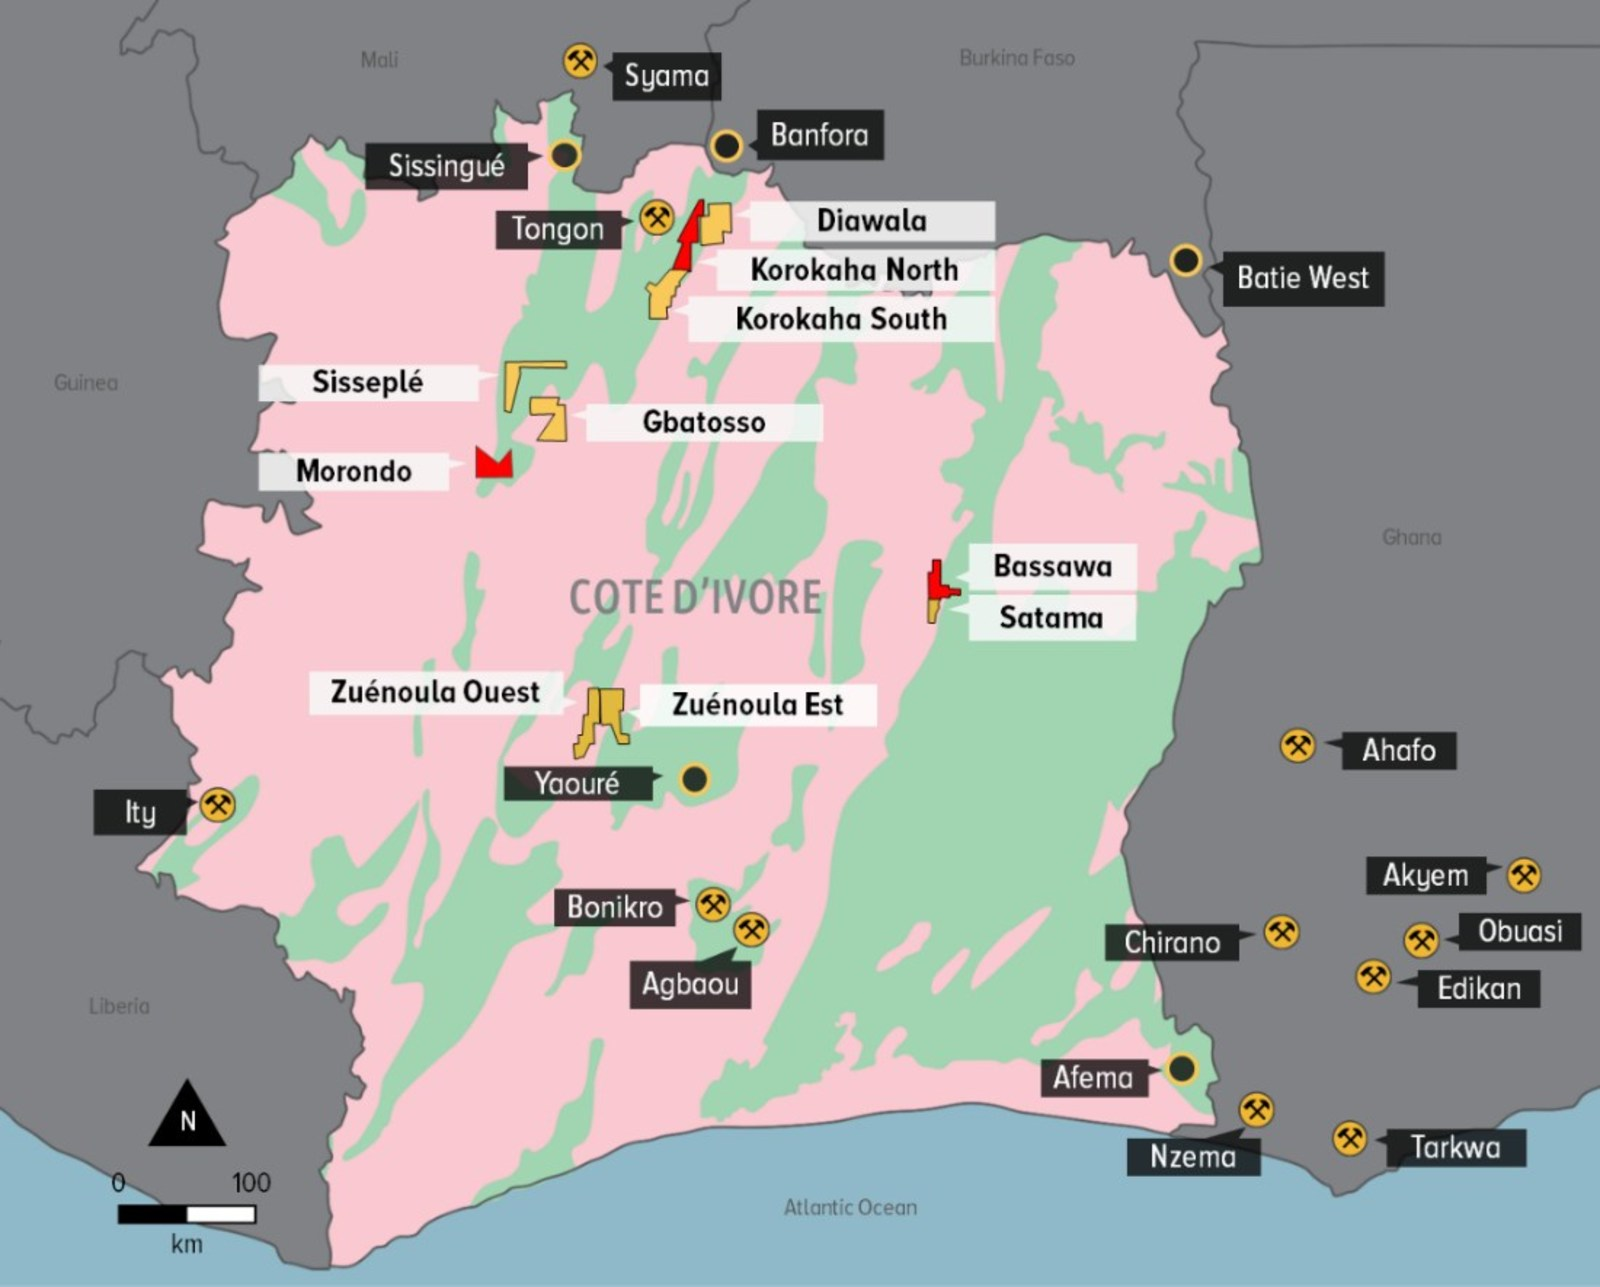 FIGURE 1: Orca Exploration Portfolio in Côte d'Ivoire